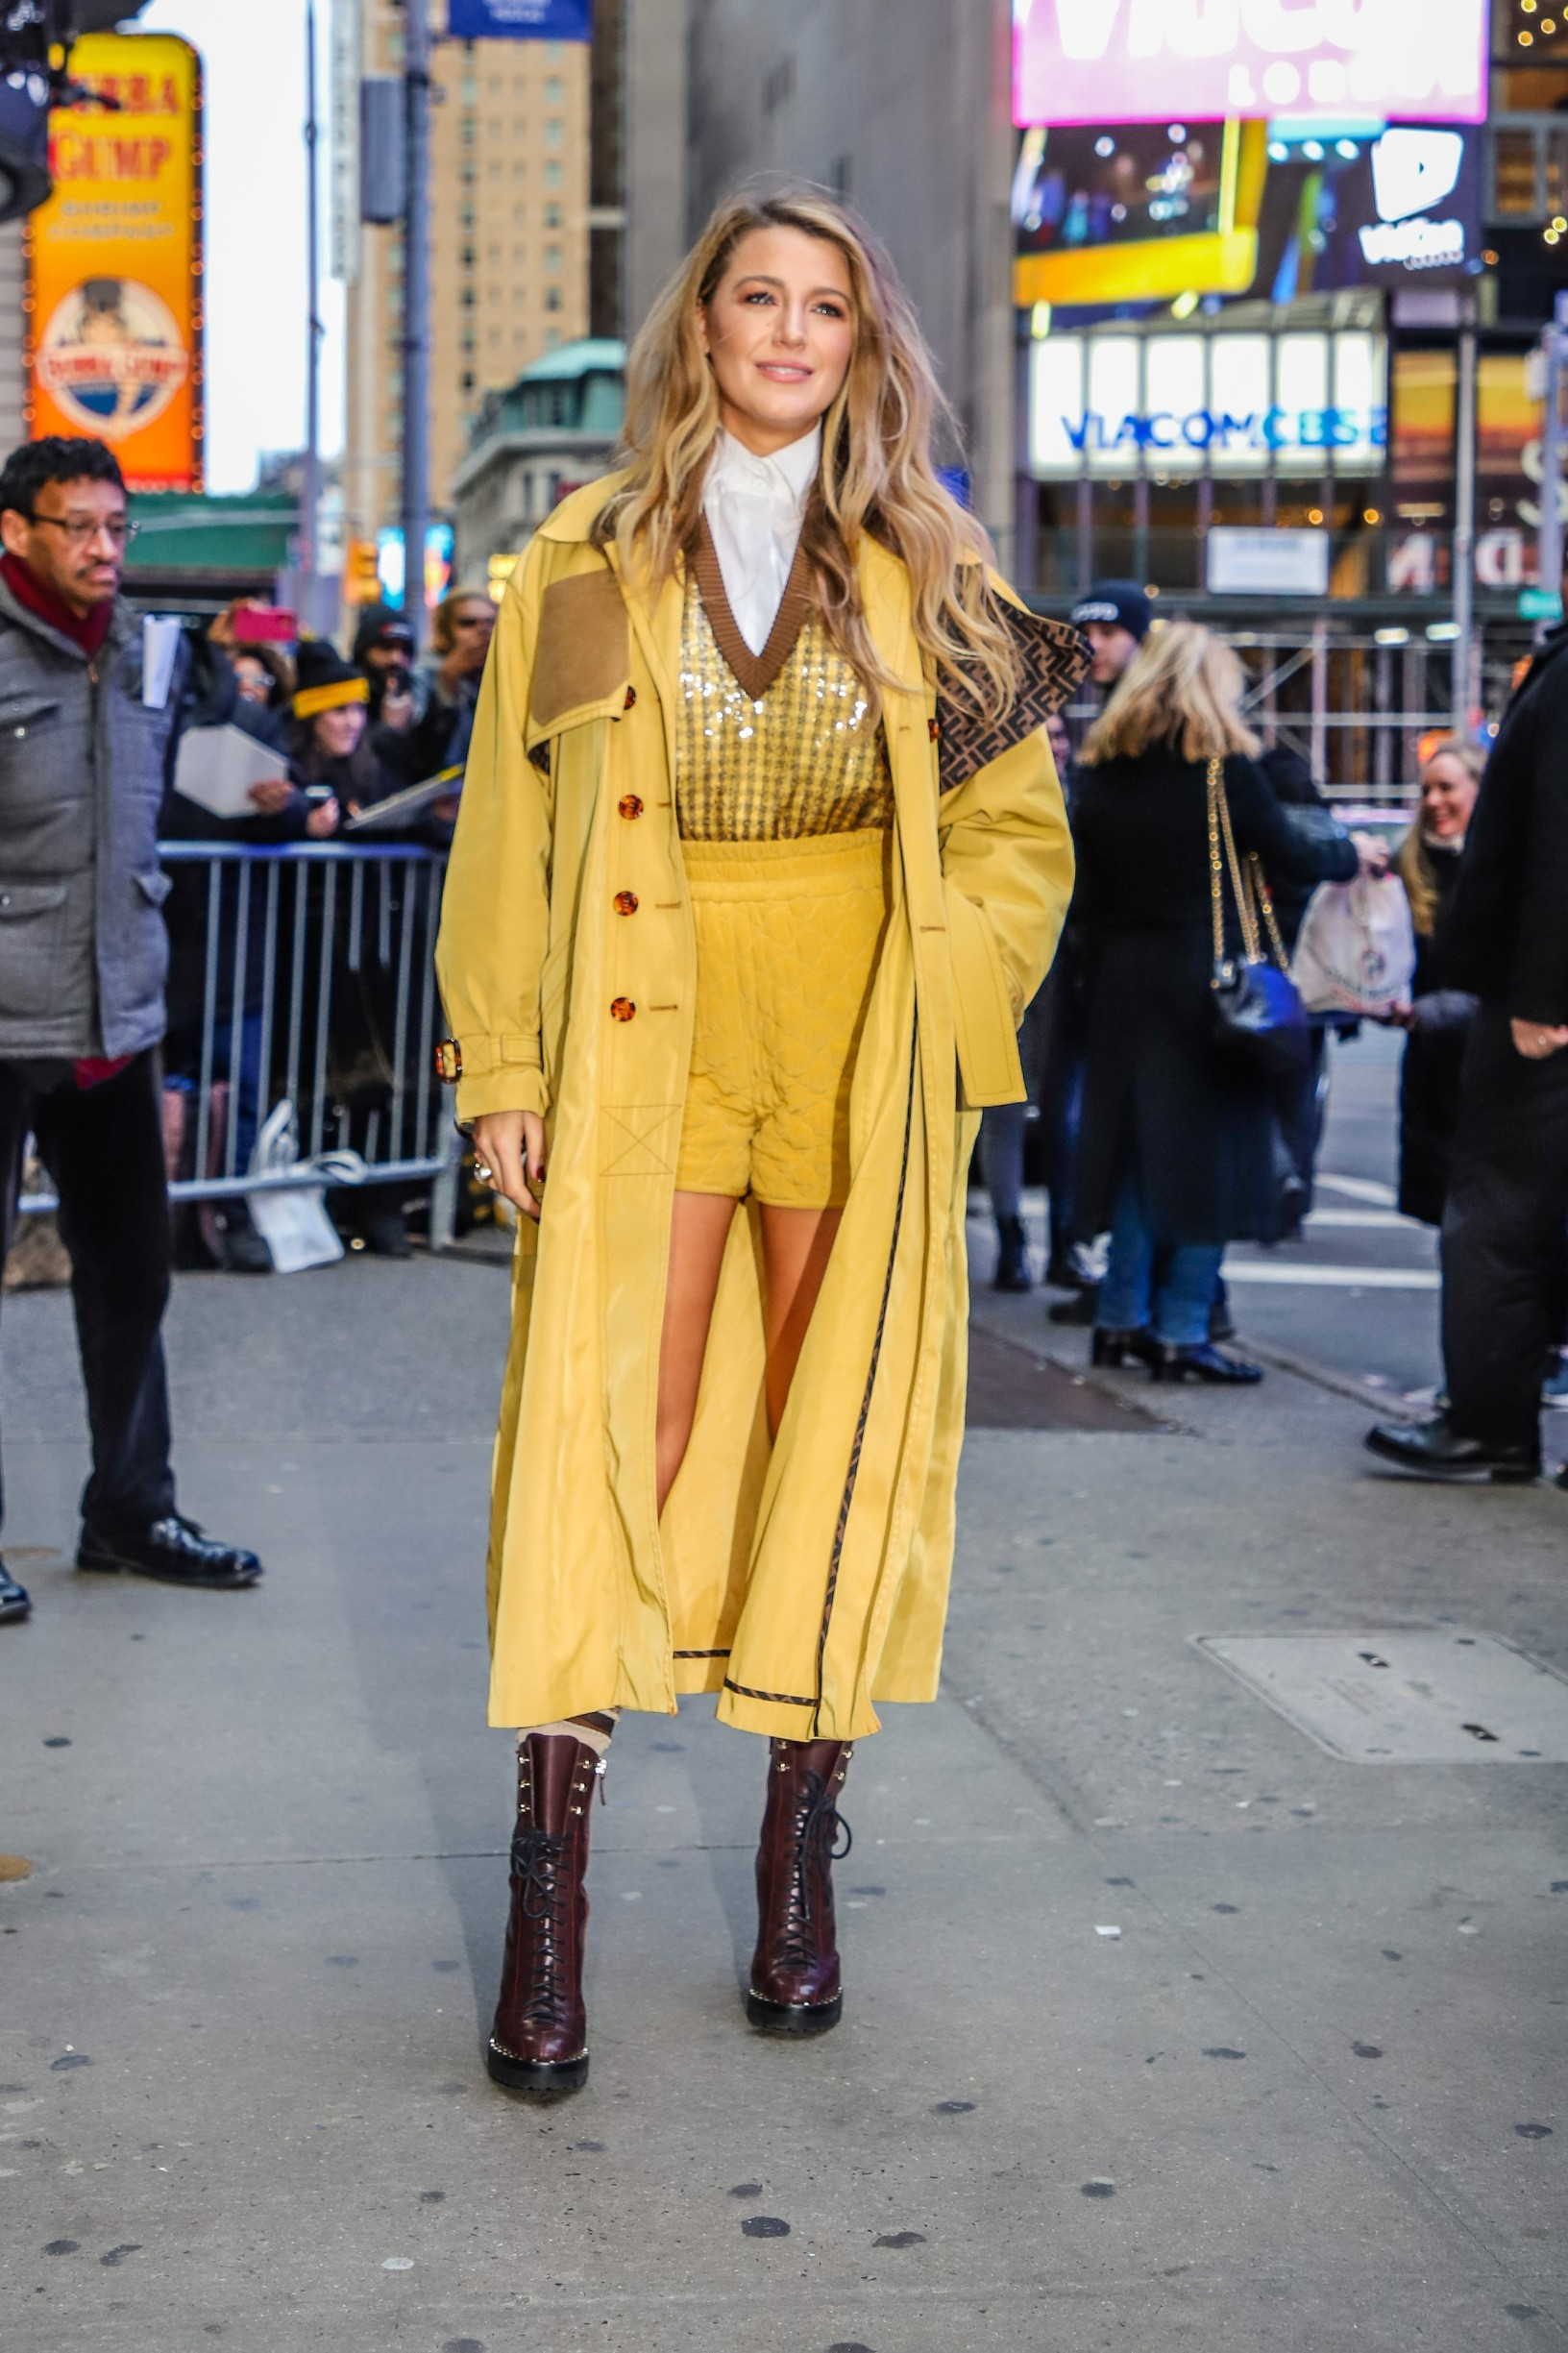 January 28, 2020, New York, New York, U.S: Actress BLAKE LIVELY is seen leaving a television show Good Morning America in the Times Square in New York City., Image: 495276675, License: Rights-managed, Restrictions: , Model Release: no, Credit line: Vanessa Carvalho / Zuma Press / Profimedia